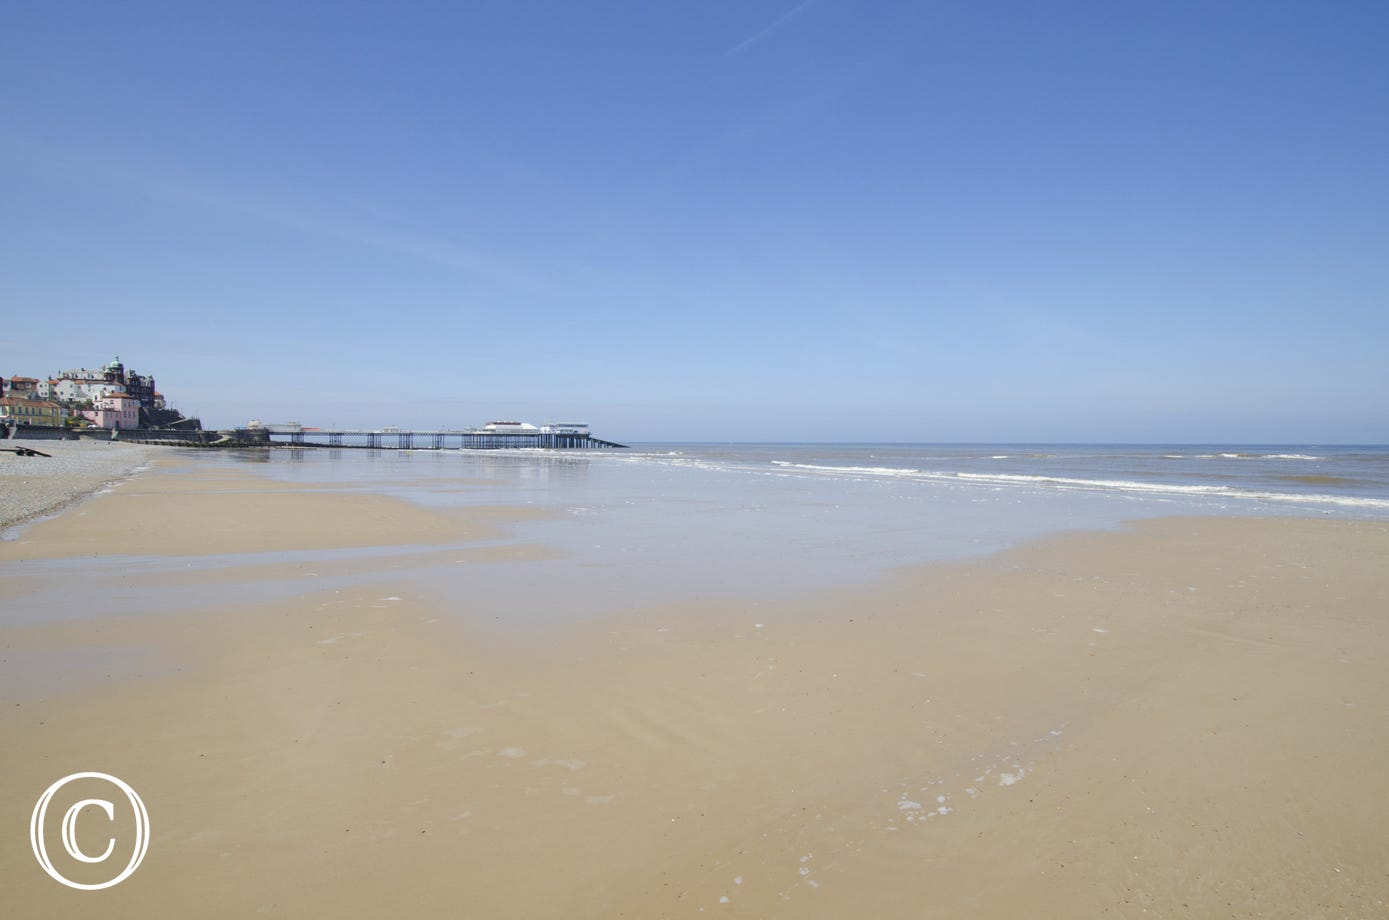 The tide is out at Cromer beach!